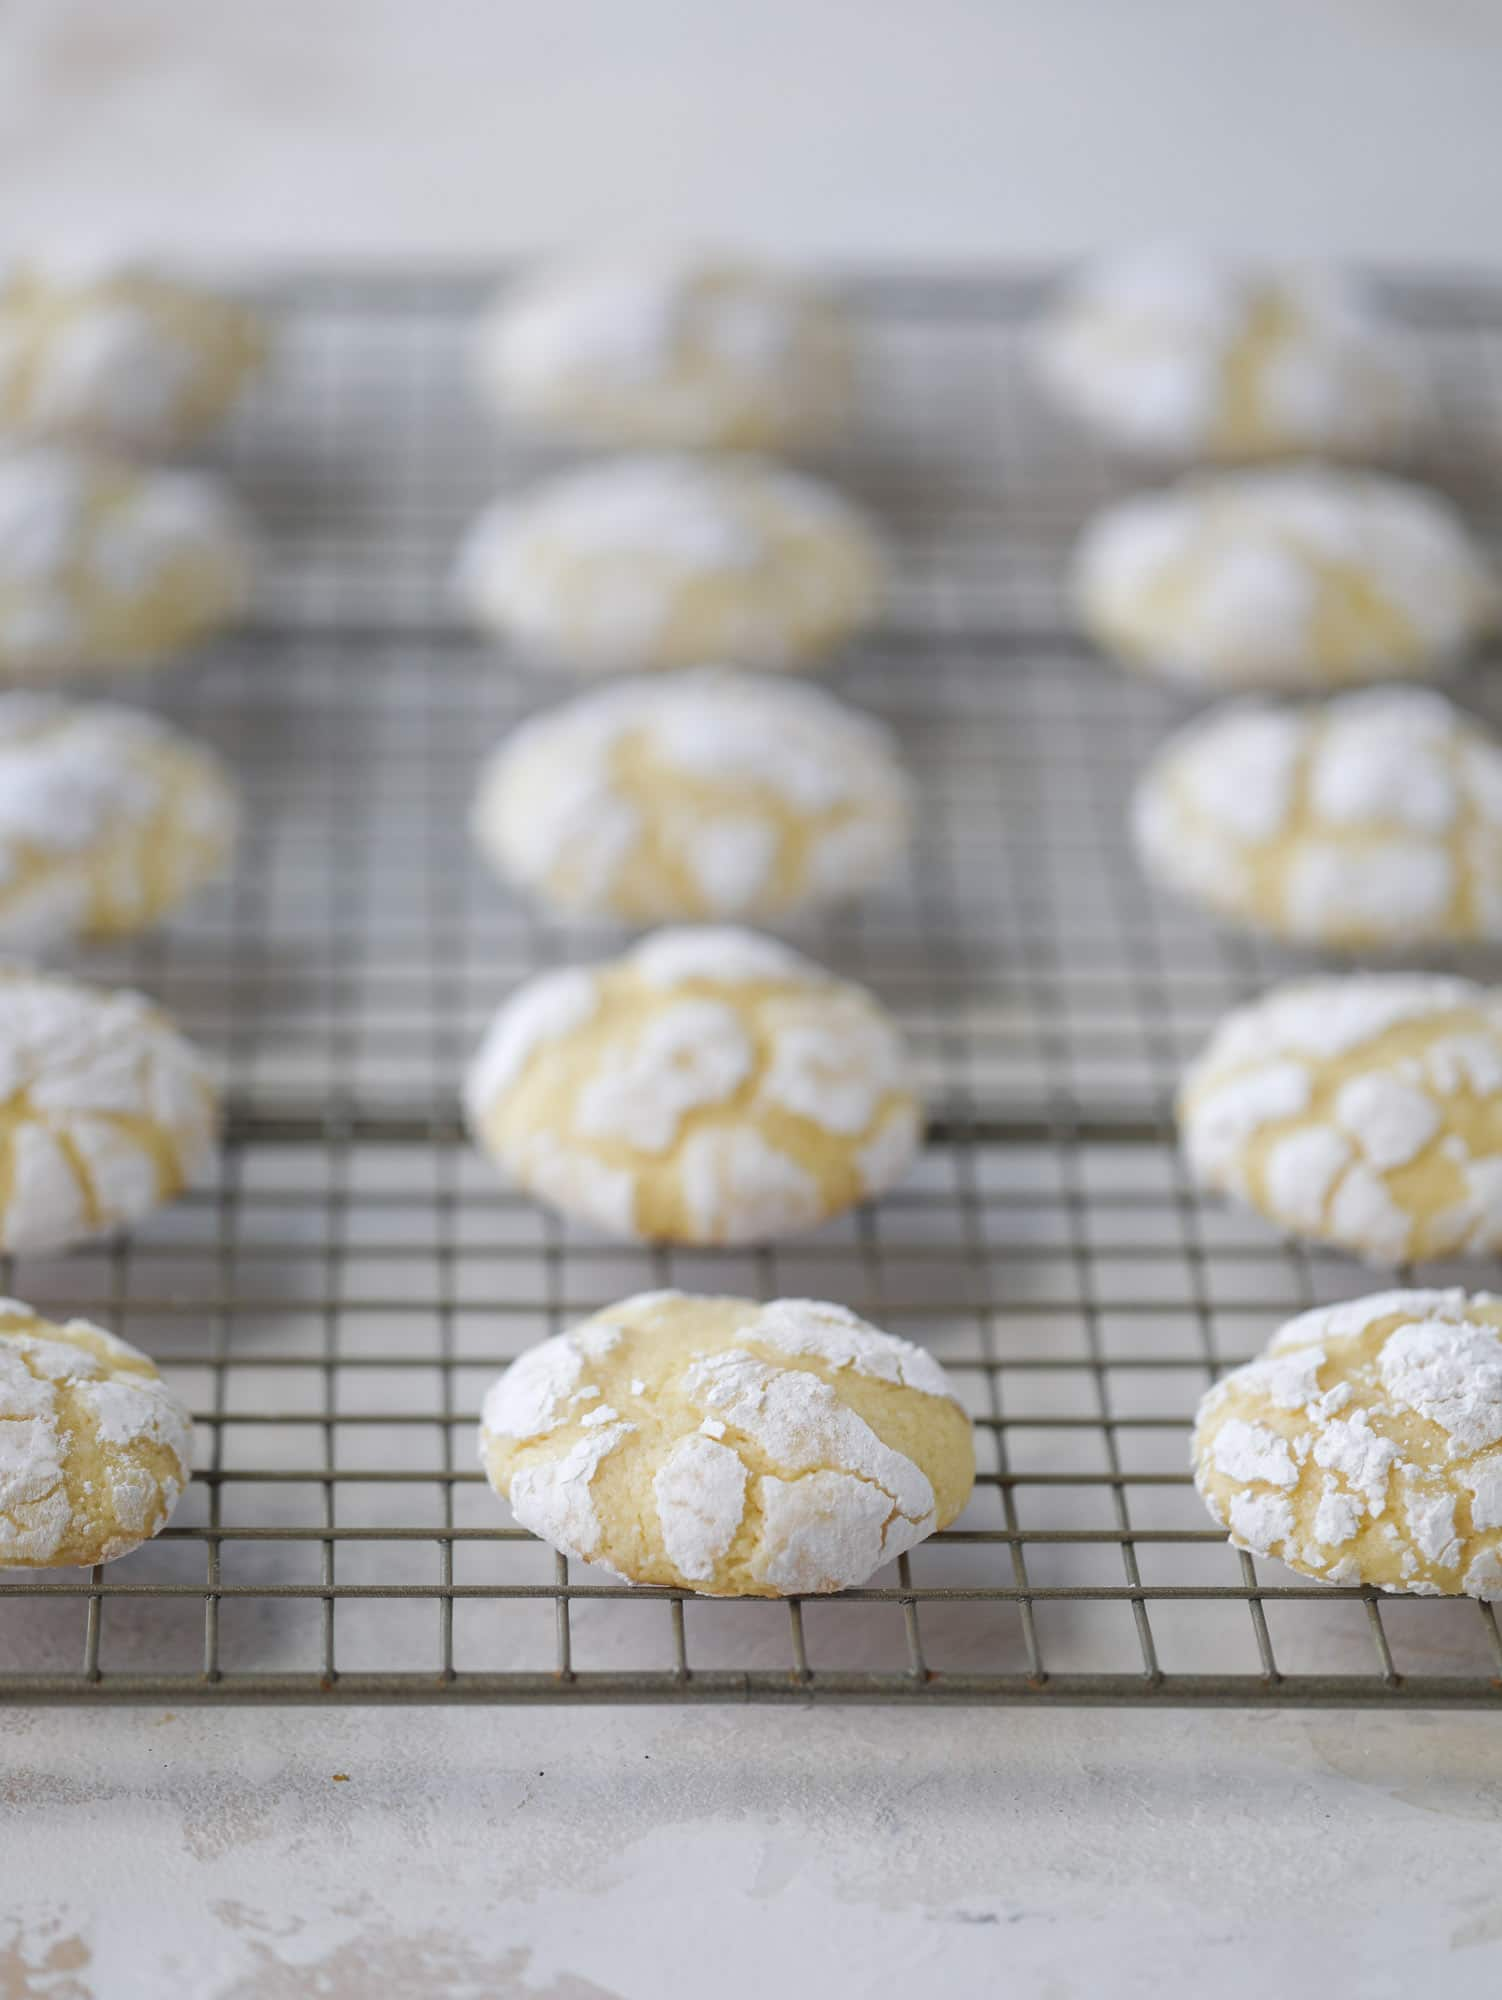 These lemon crinkle cookies are perfect if you love lemon desserts! They take after chocolate crinkle cookies, but are a delightful refreshing lemon flavor sprinkle with powdered sugar. These are always a huge hit! I howsweeteats.com #lemoncrinkle #cookies